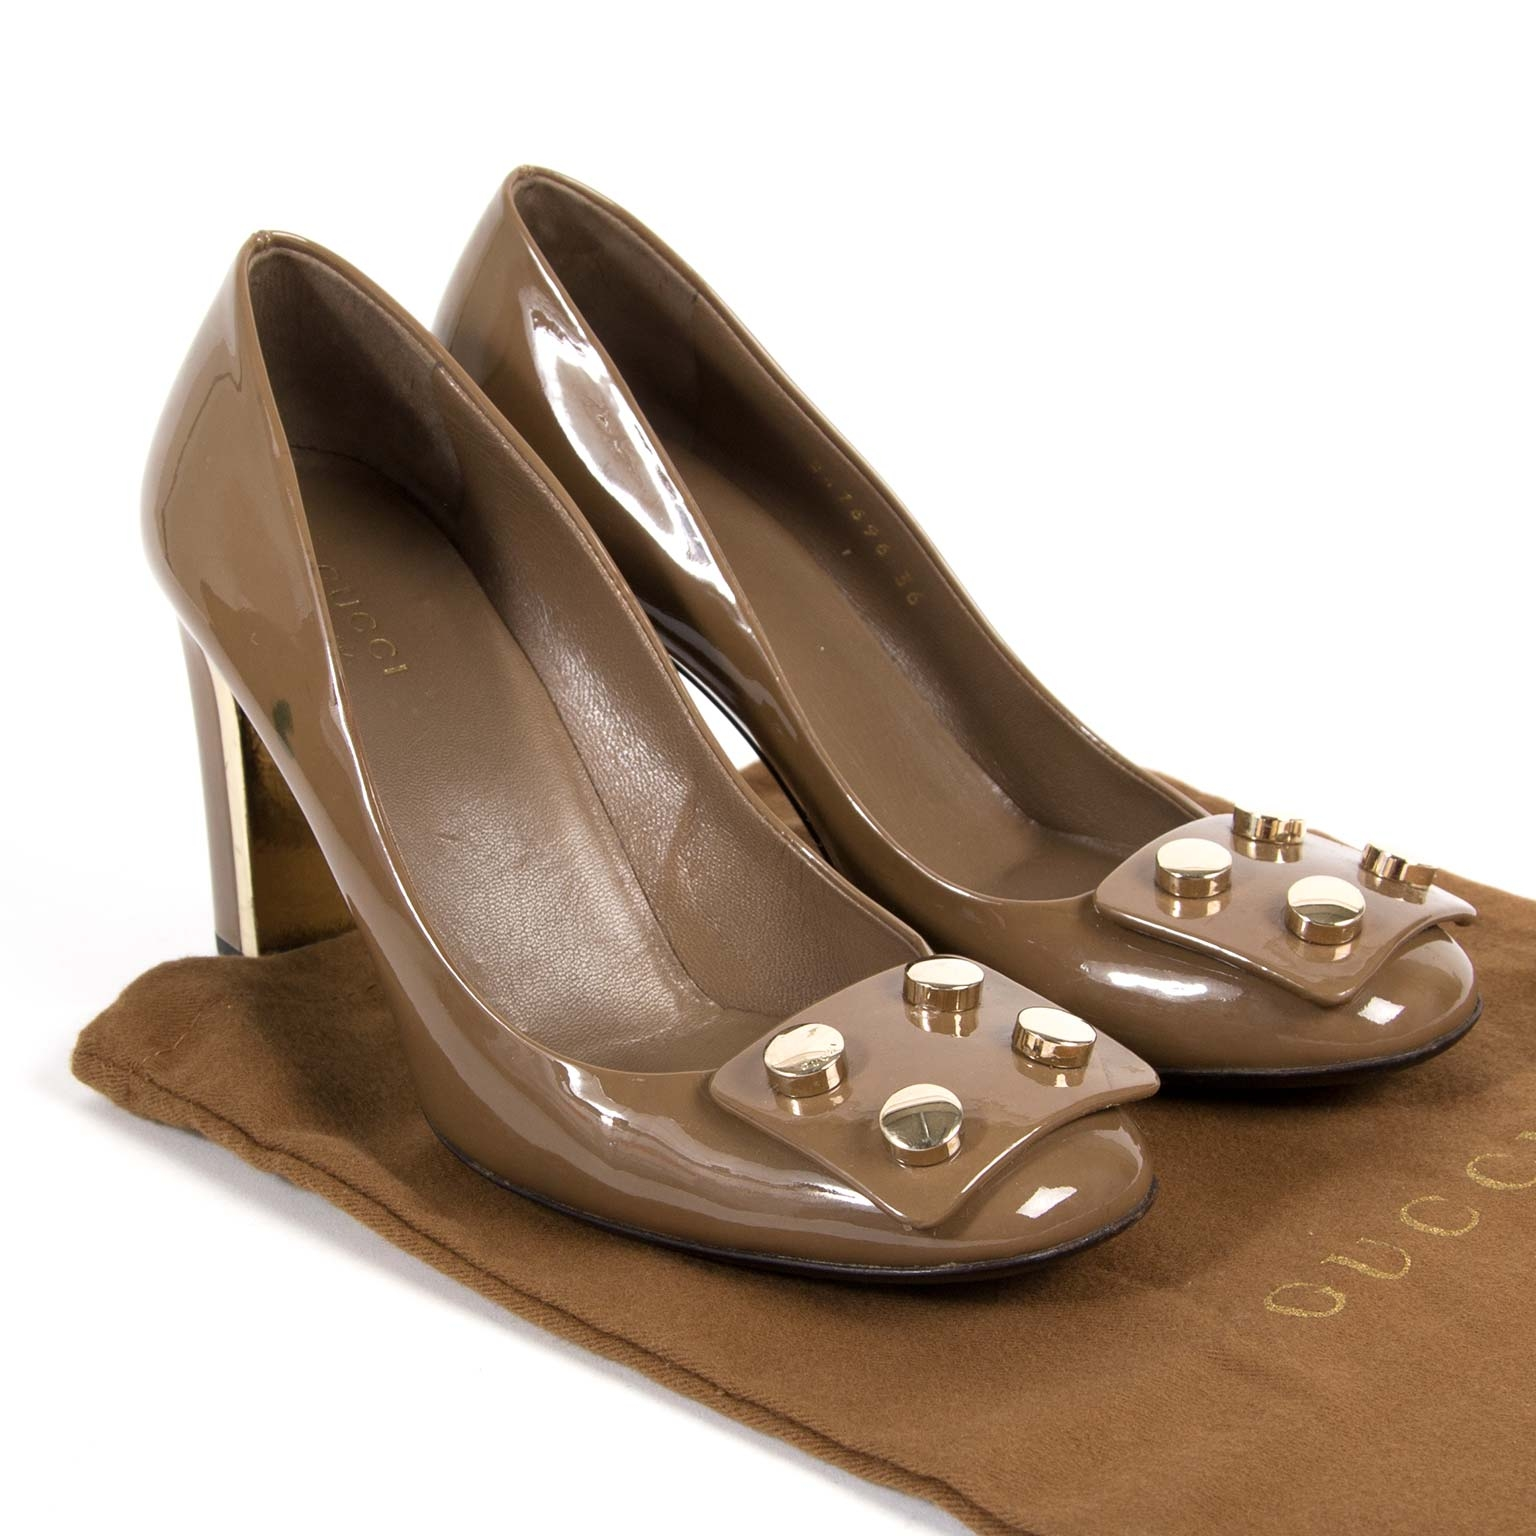 gucci brown patent audrey stud pumps now for sale at labellov vintage fashion webshop belgium